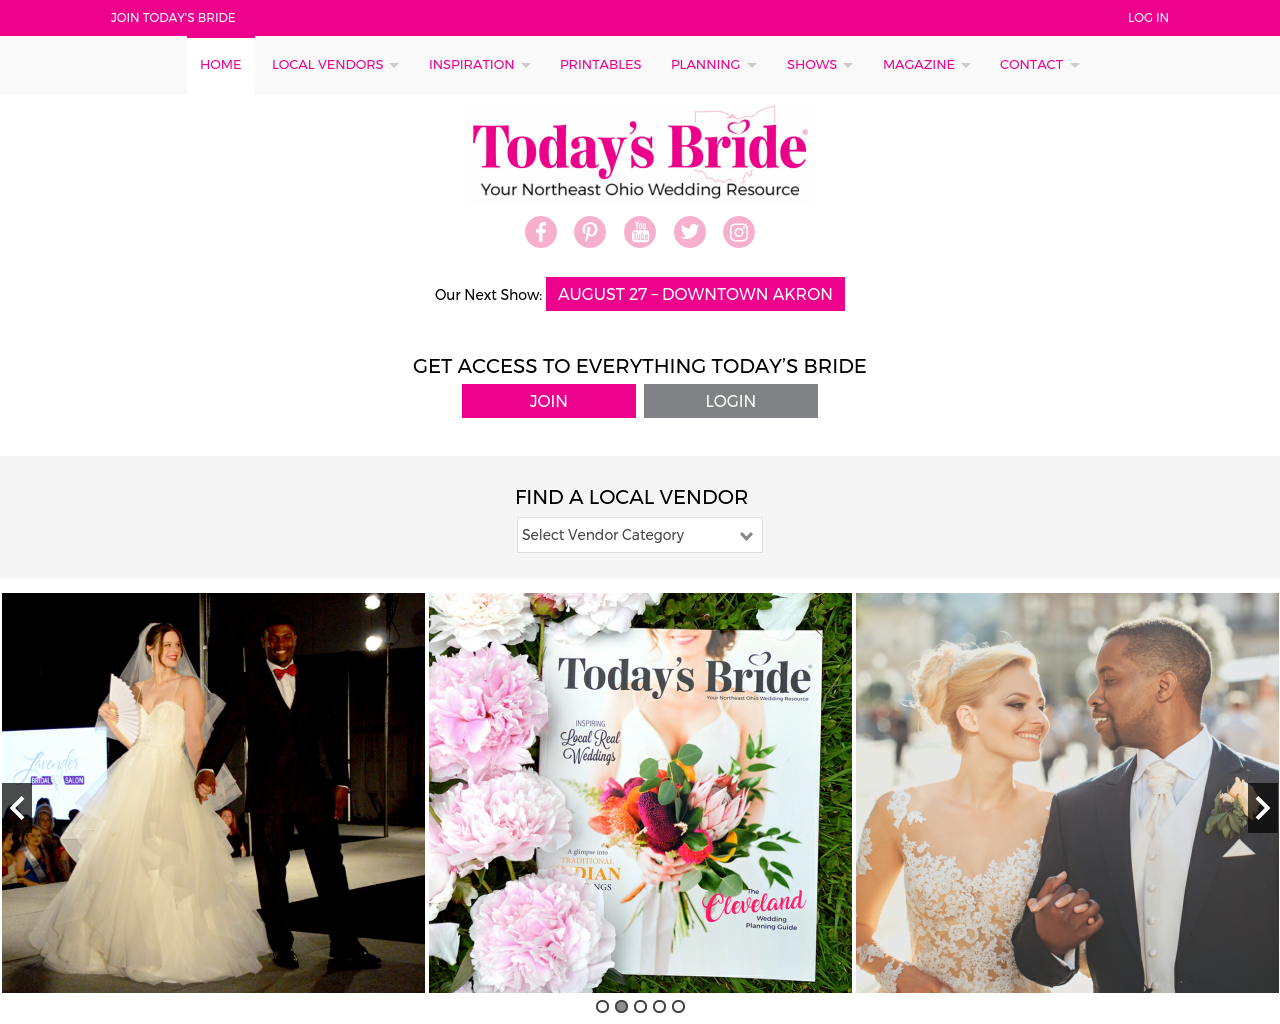 Today's-Bride-Advertising-Reviews-Pricing